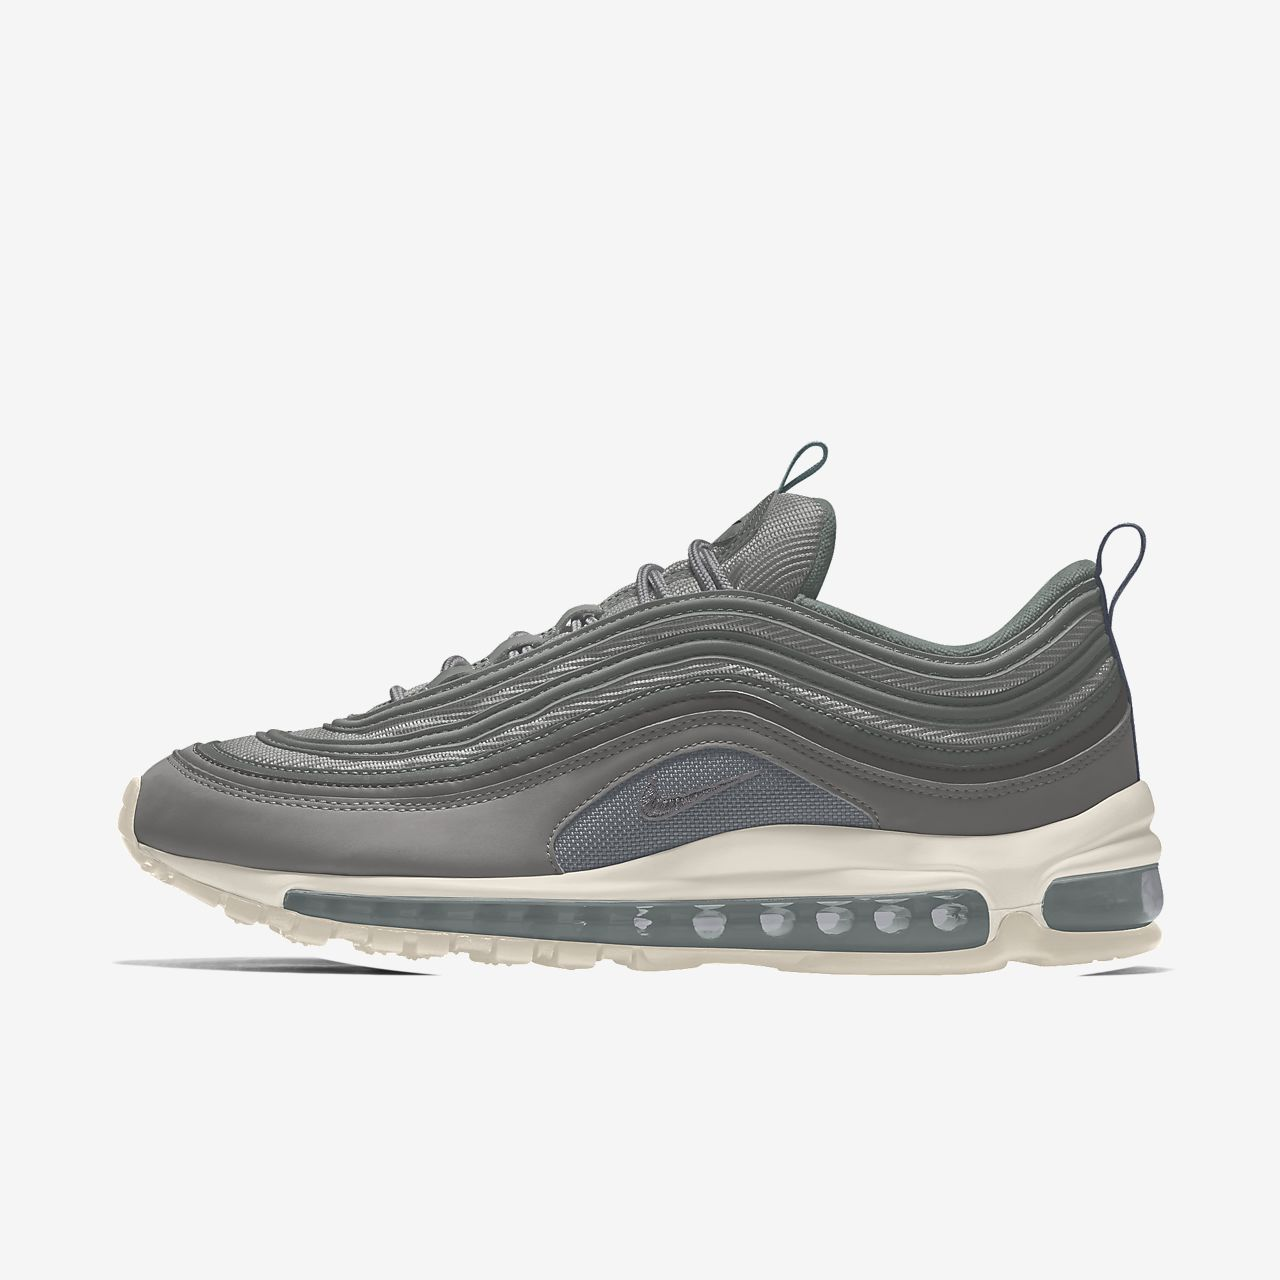 Chaussure personnalisable Nike Air Max 97 By You pour Femme